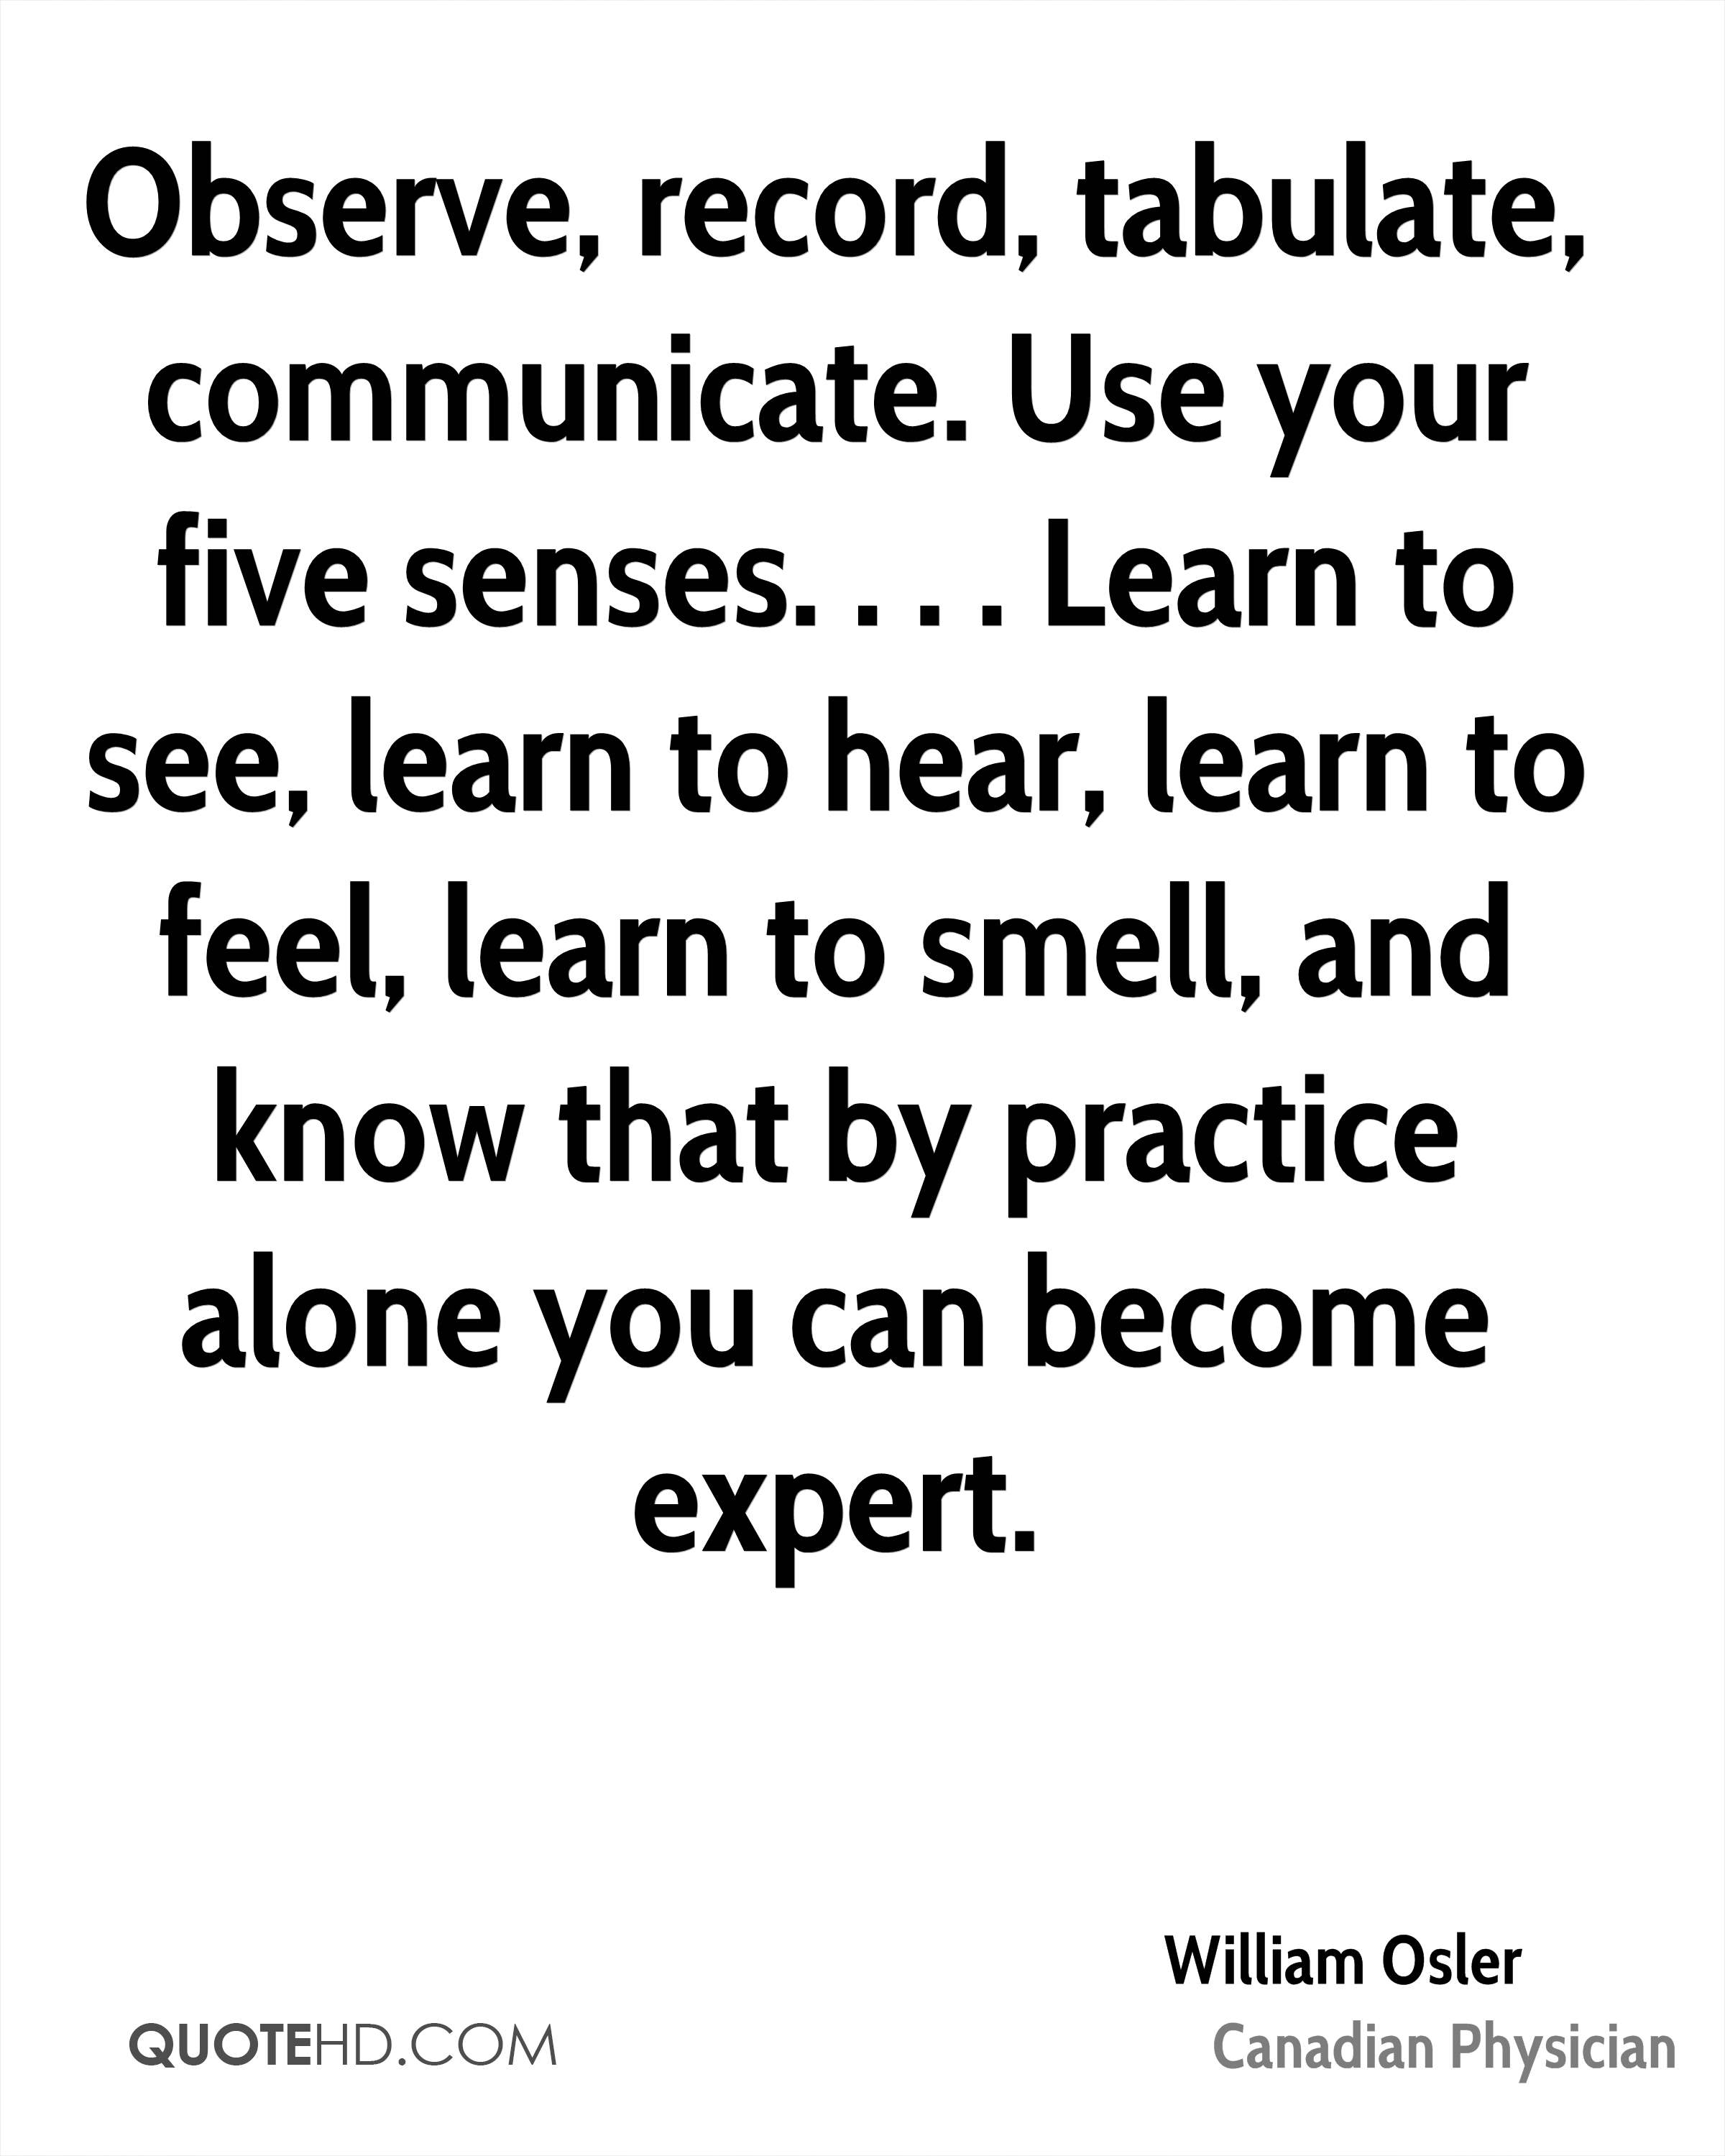 Observe, record, tabulate, communicate. Use your five senses. . . . Learn to see, learn to hear, learn to feel, learn to smell, and know that by practice alone you can become expert.